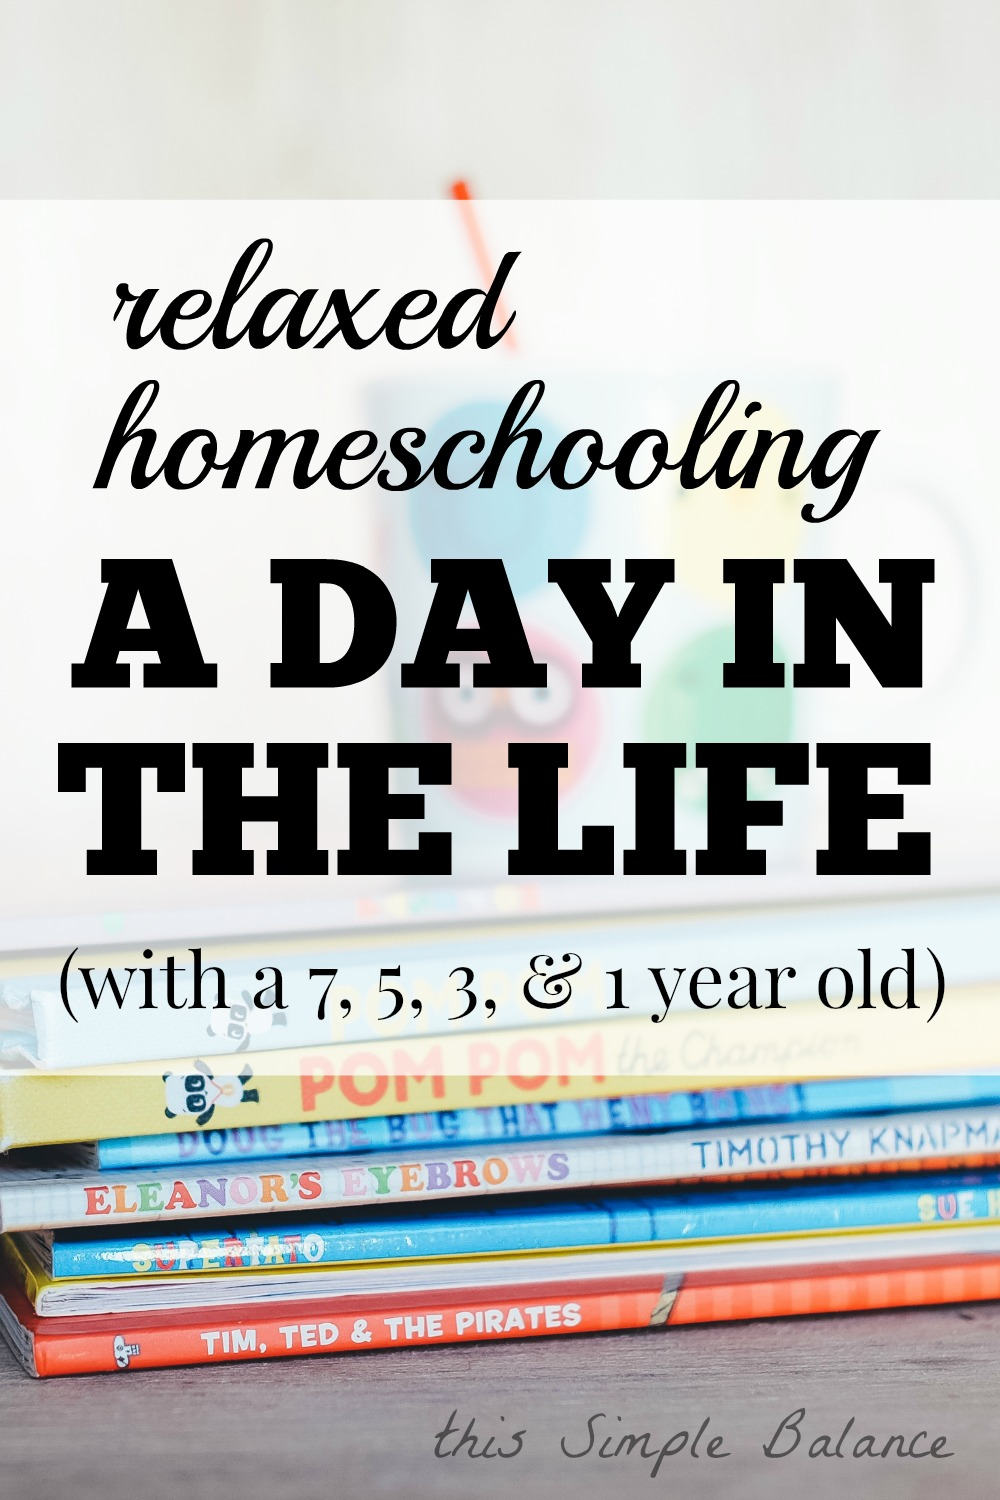 relaxed homeschooling, typical homeschool day, day in the life homeschooling,, big family homeschool, homeschooling with toddlers